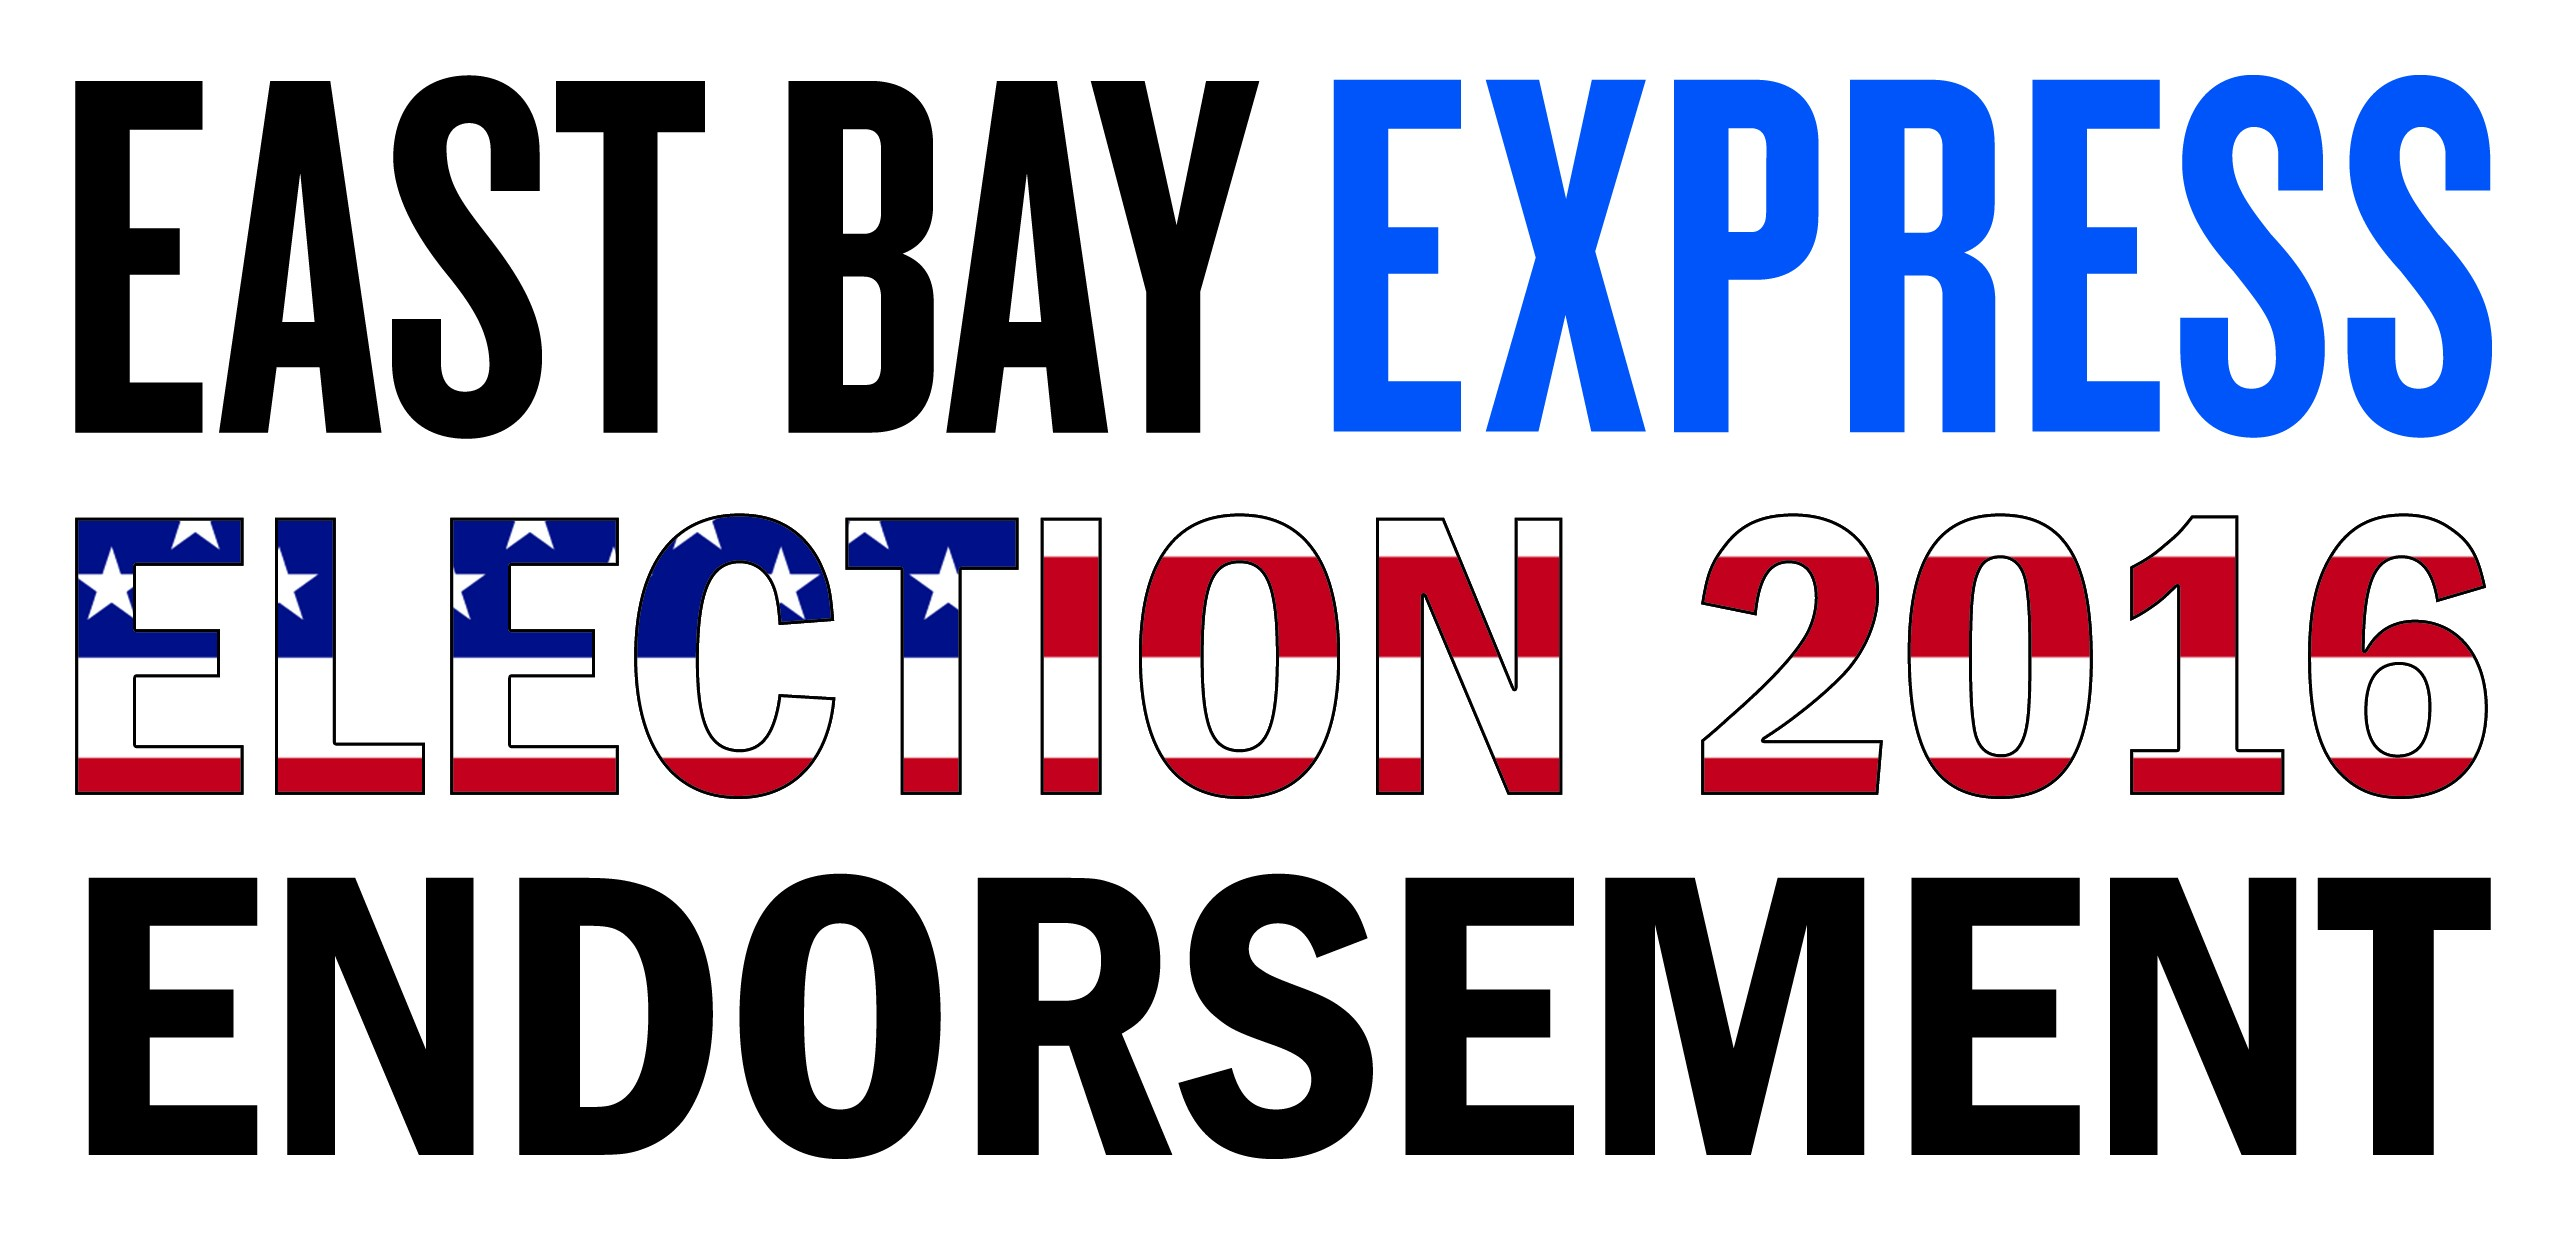 Vote With Us! The East Bay Express' Endorsements for